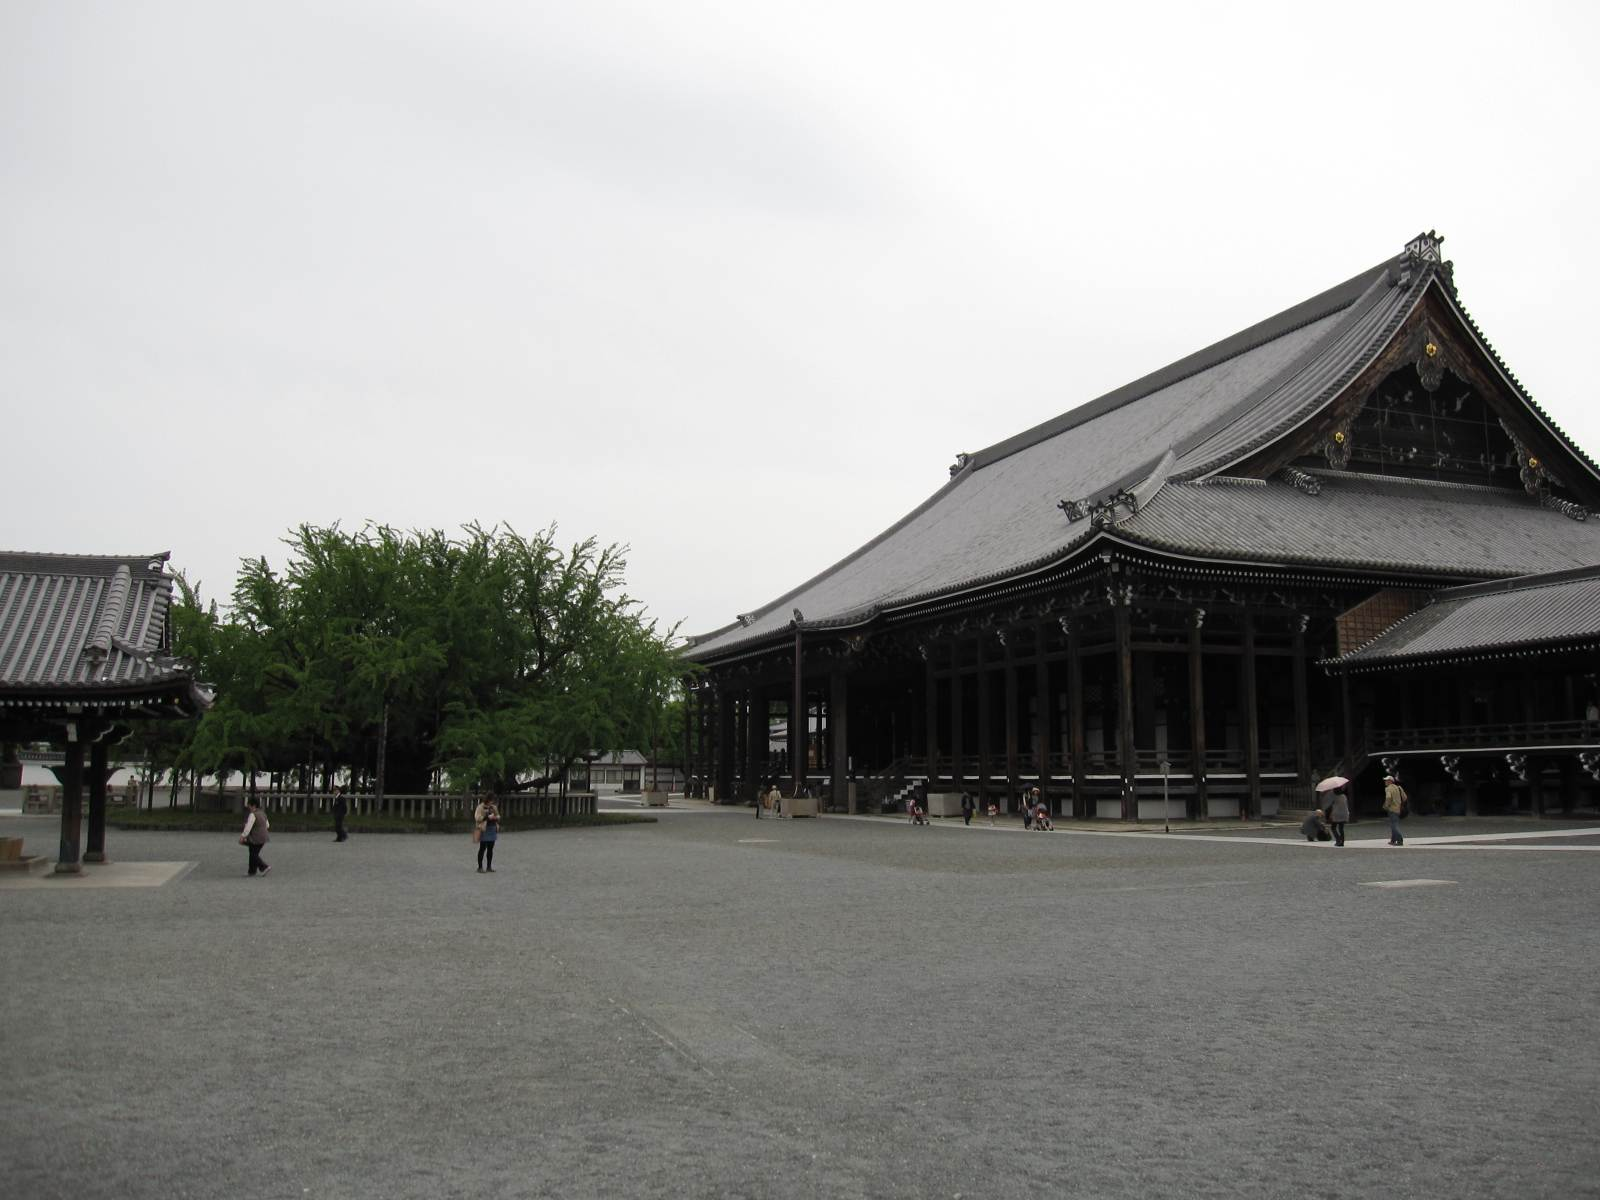 Kyoto travel guide area by area: Kyoto station area ...